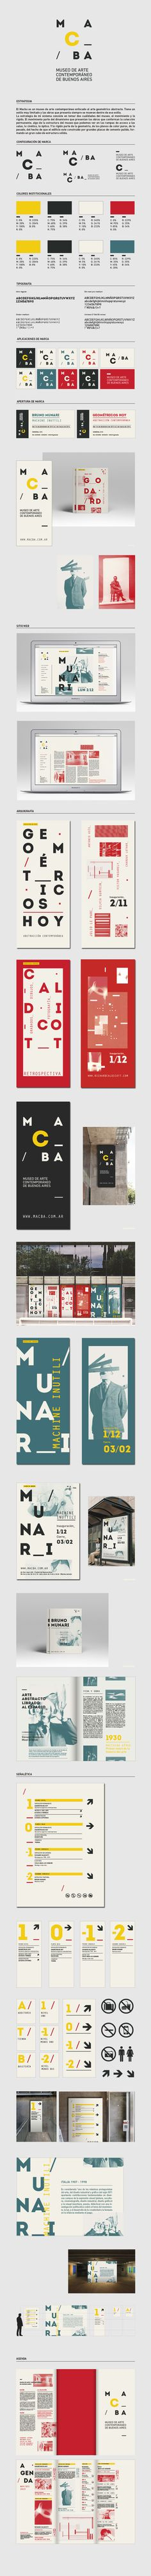 Sistema MACBA on Behance